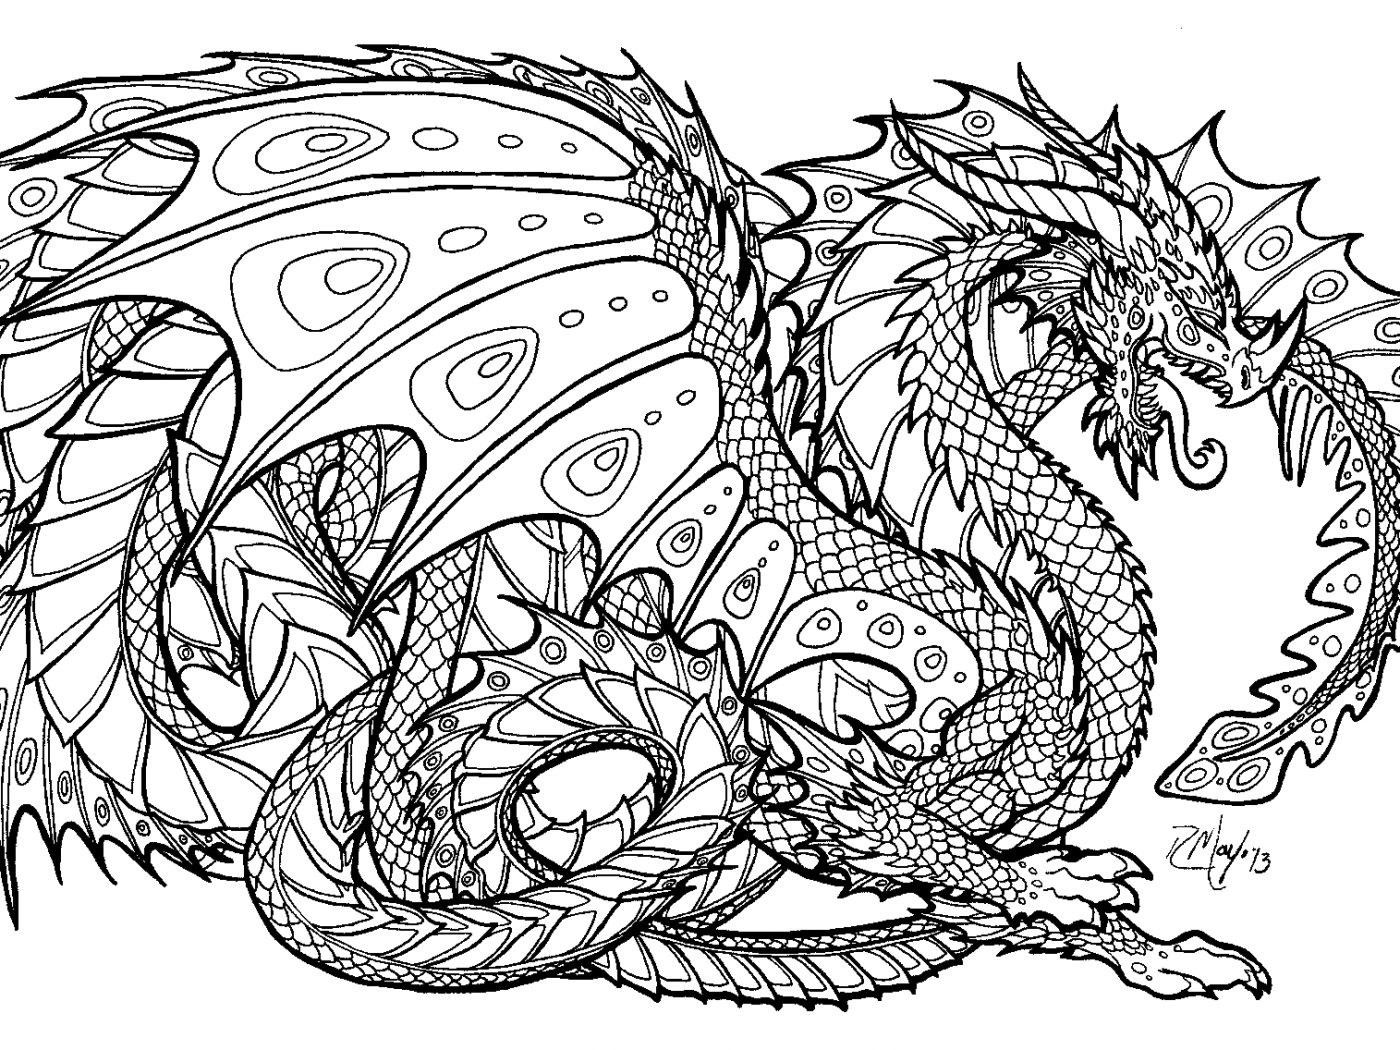 Intricate Animal Coloring Pages at GetDrawings.com | Free ...